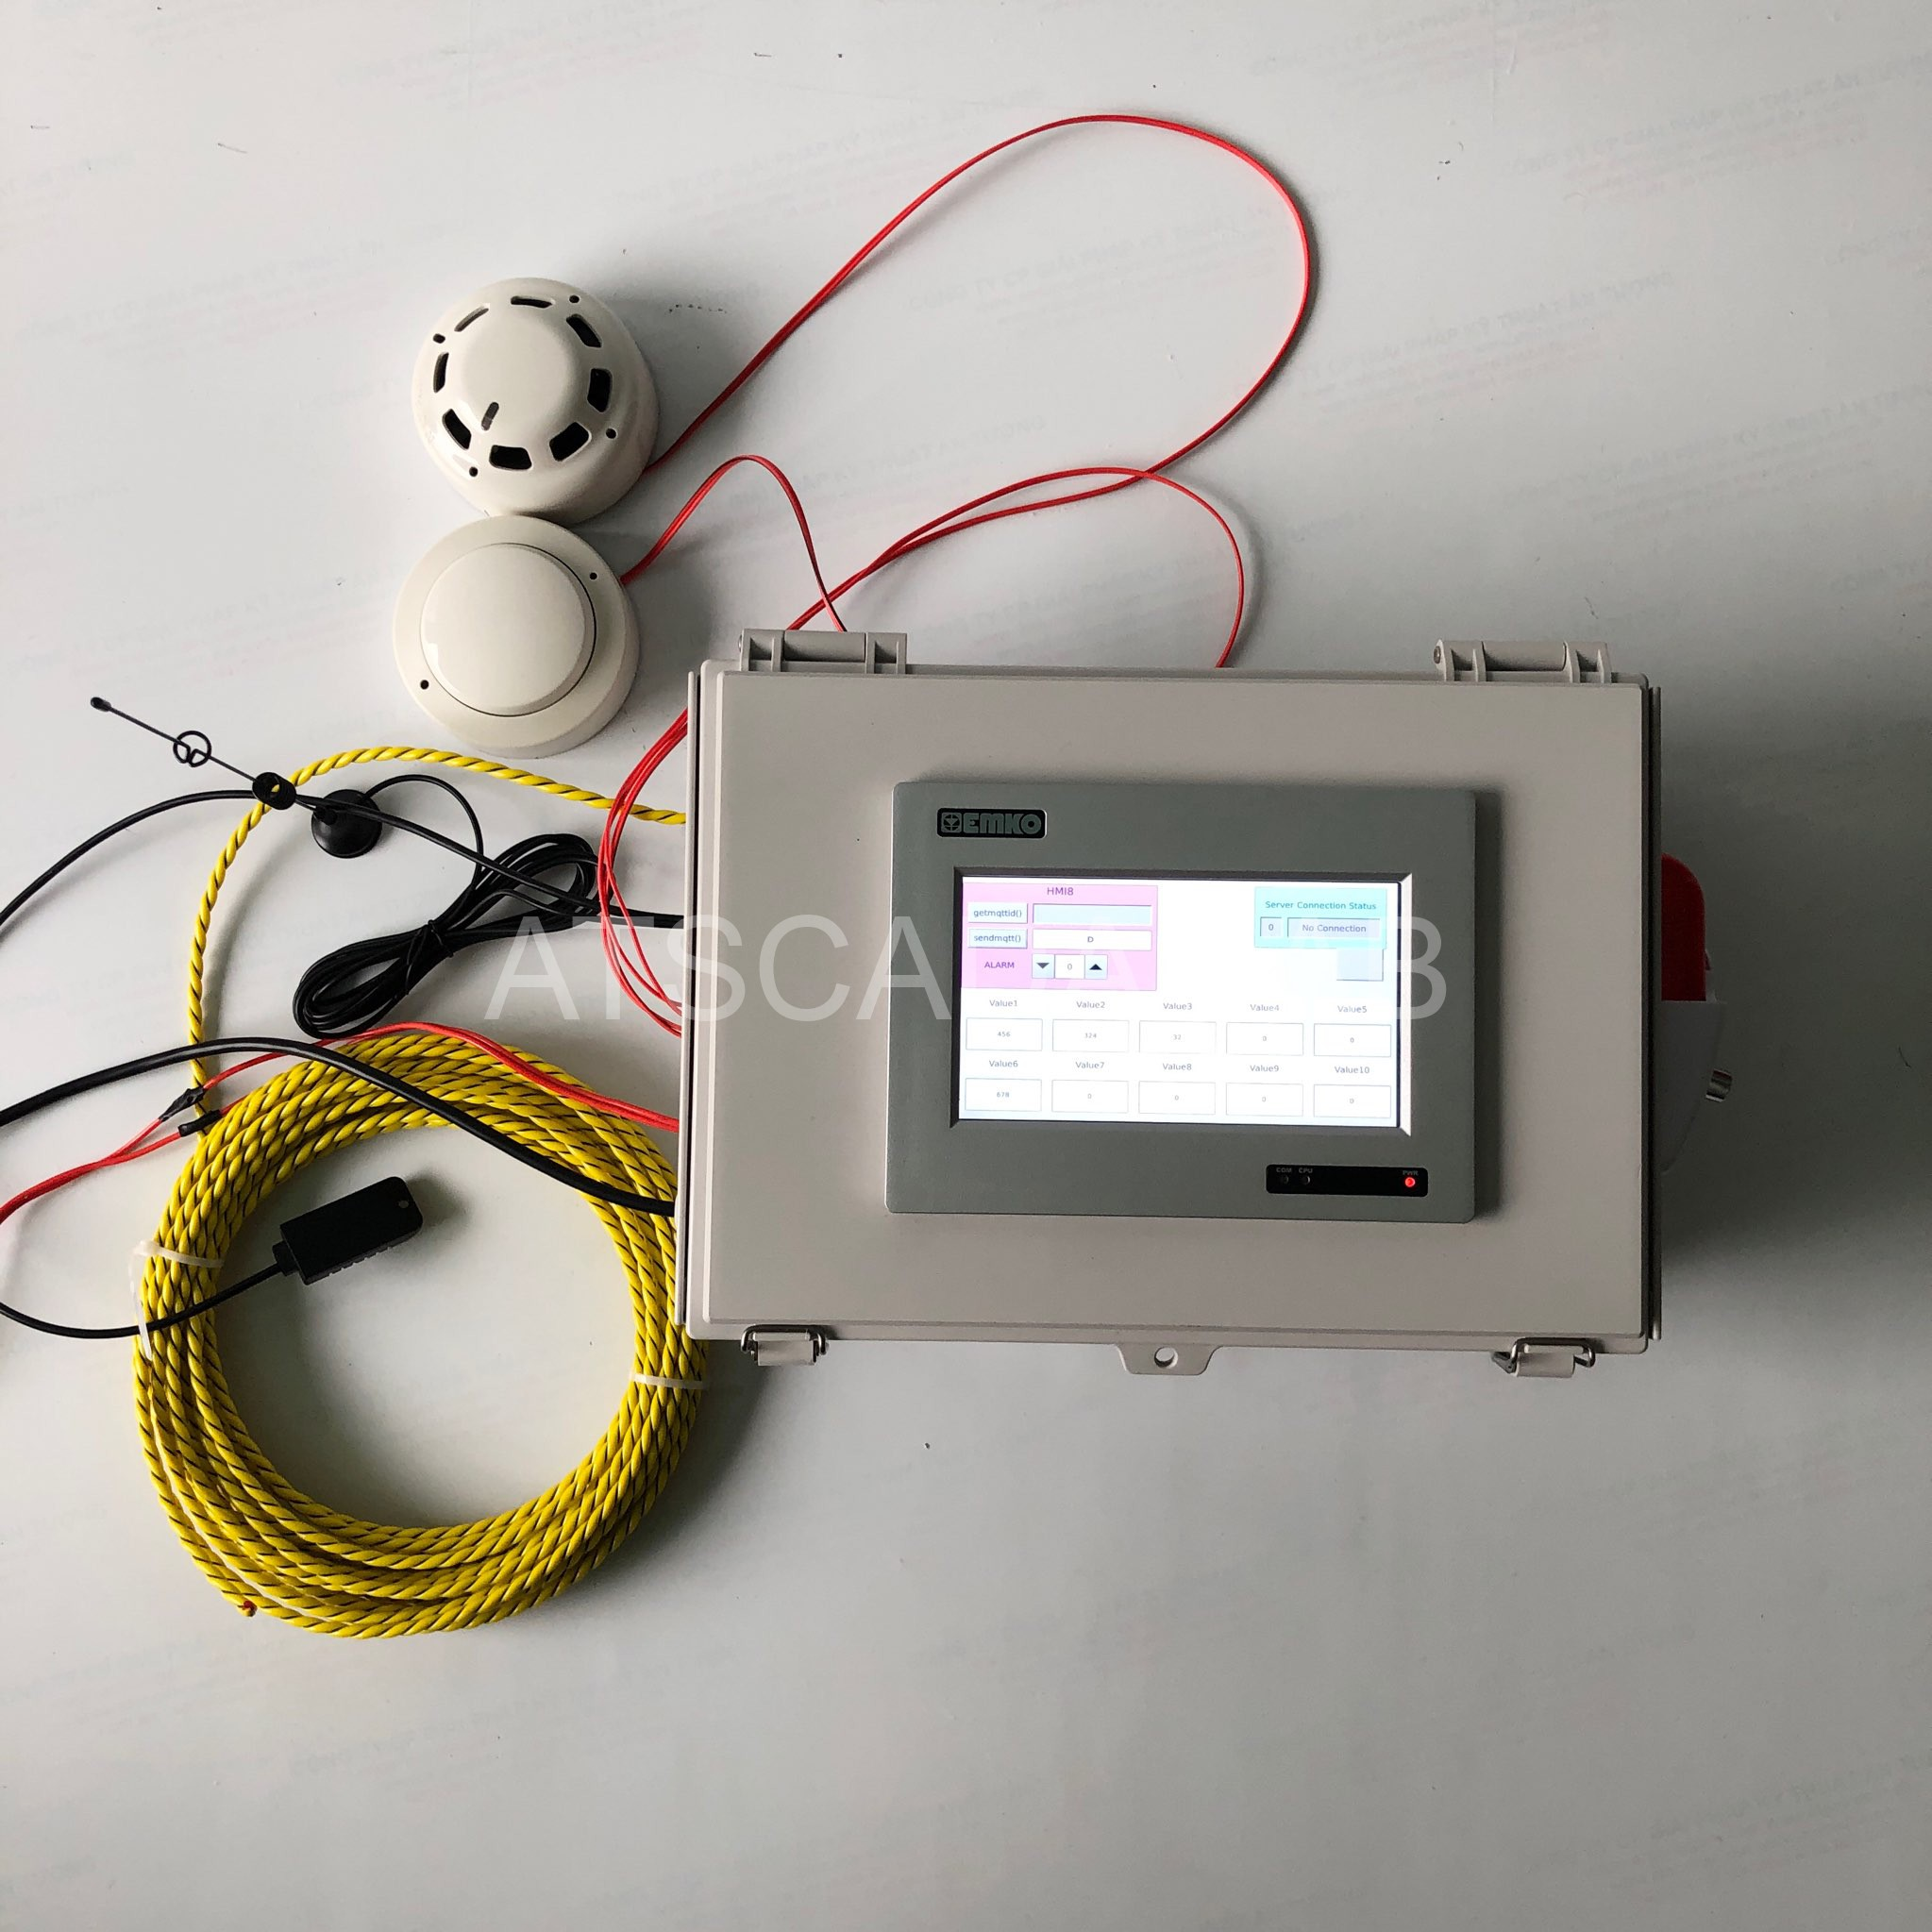 devices-in-environmental-monitoring-system